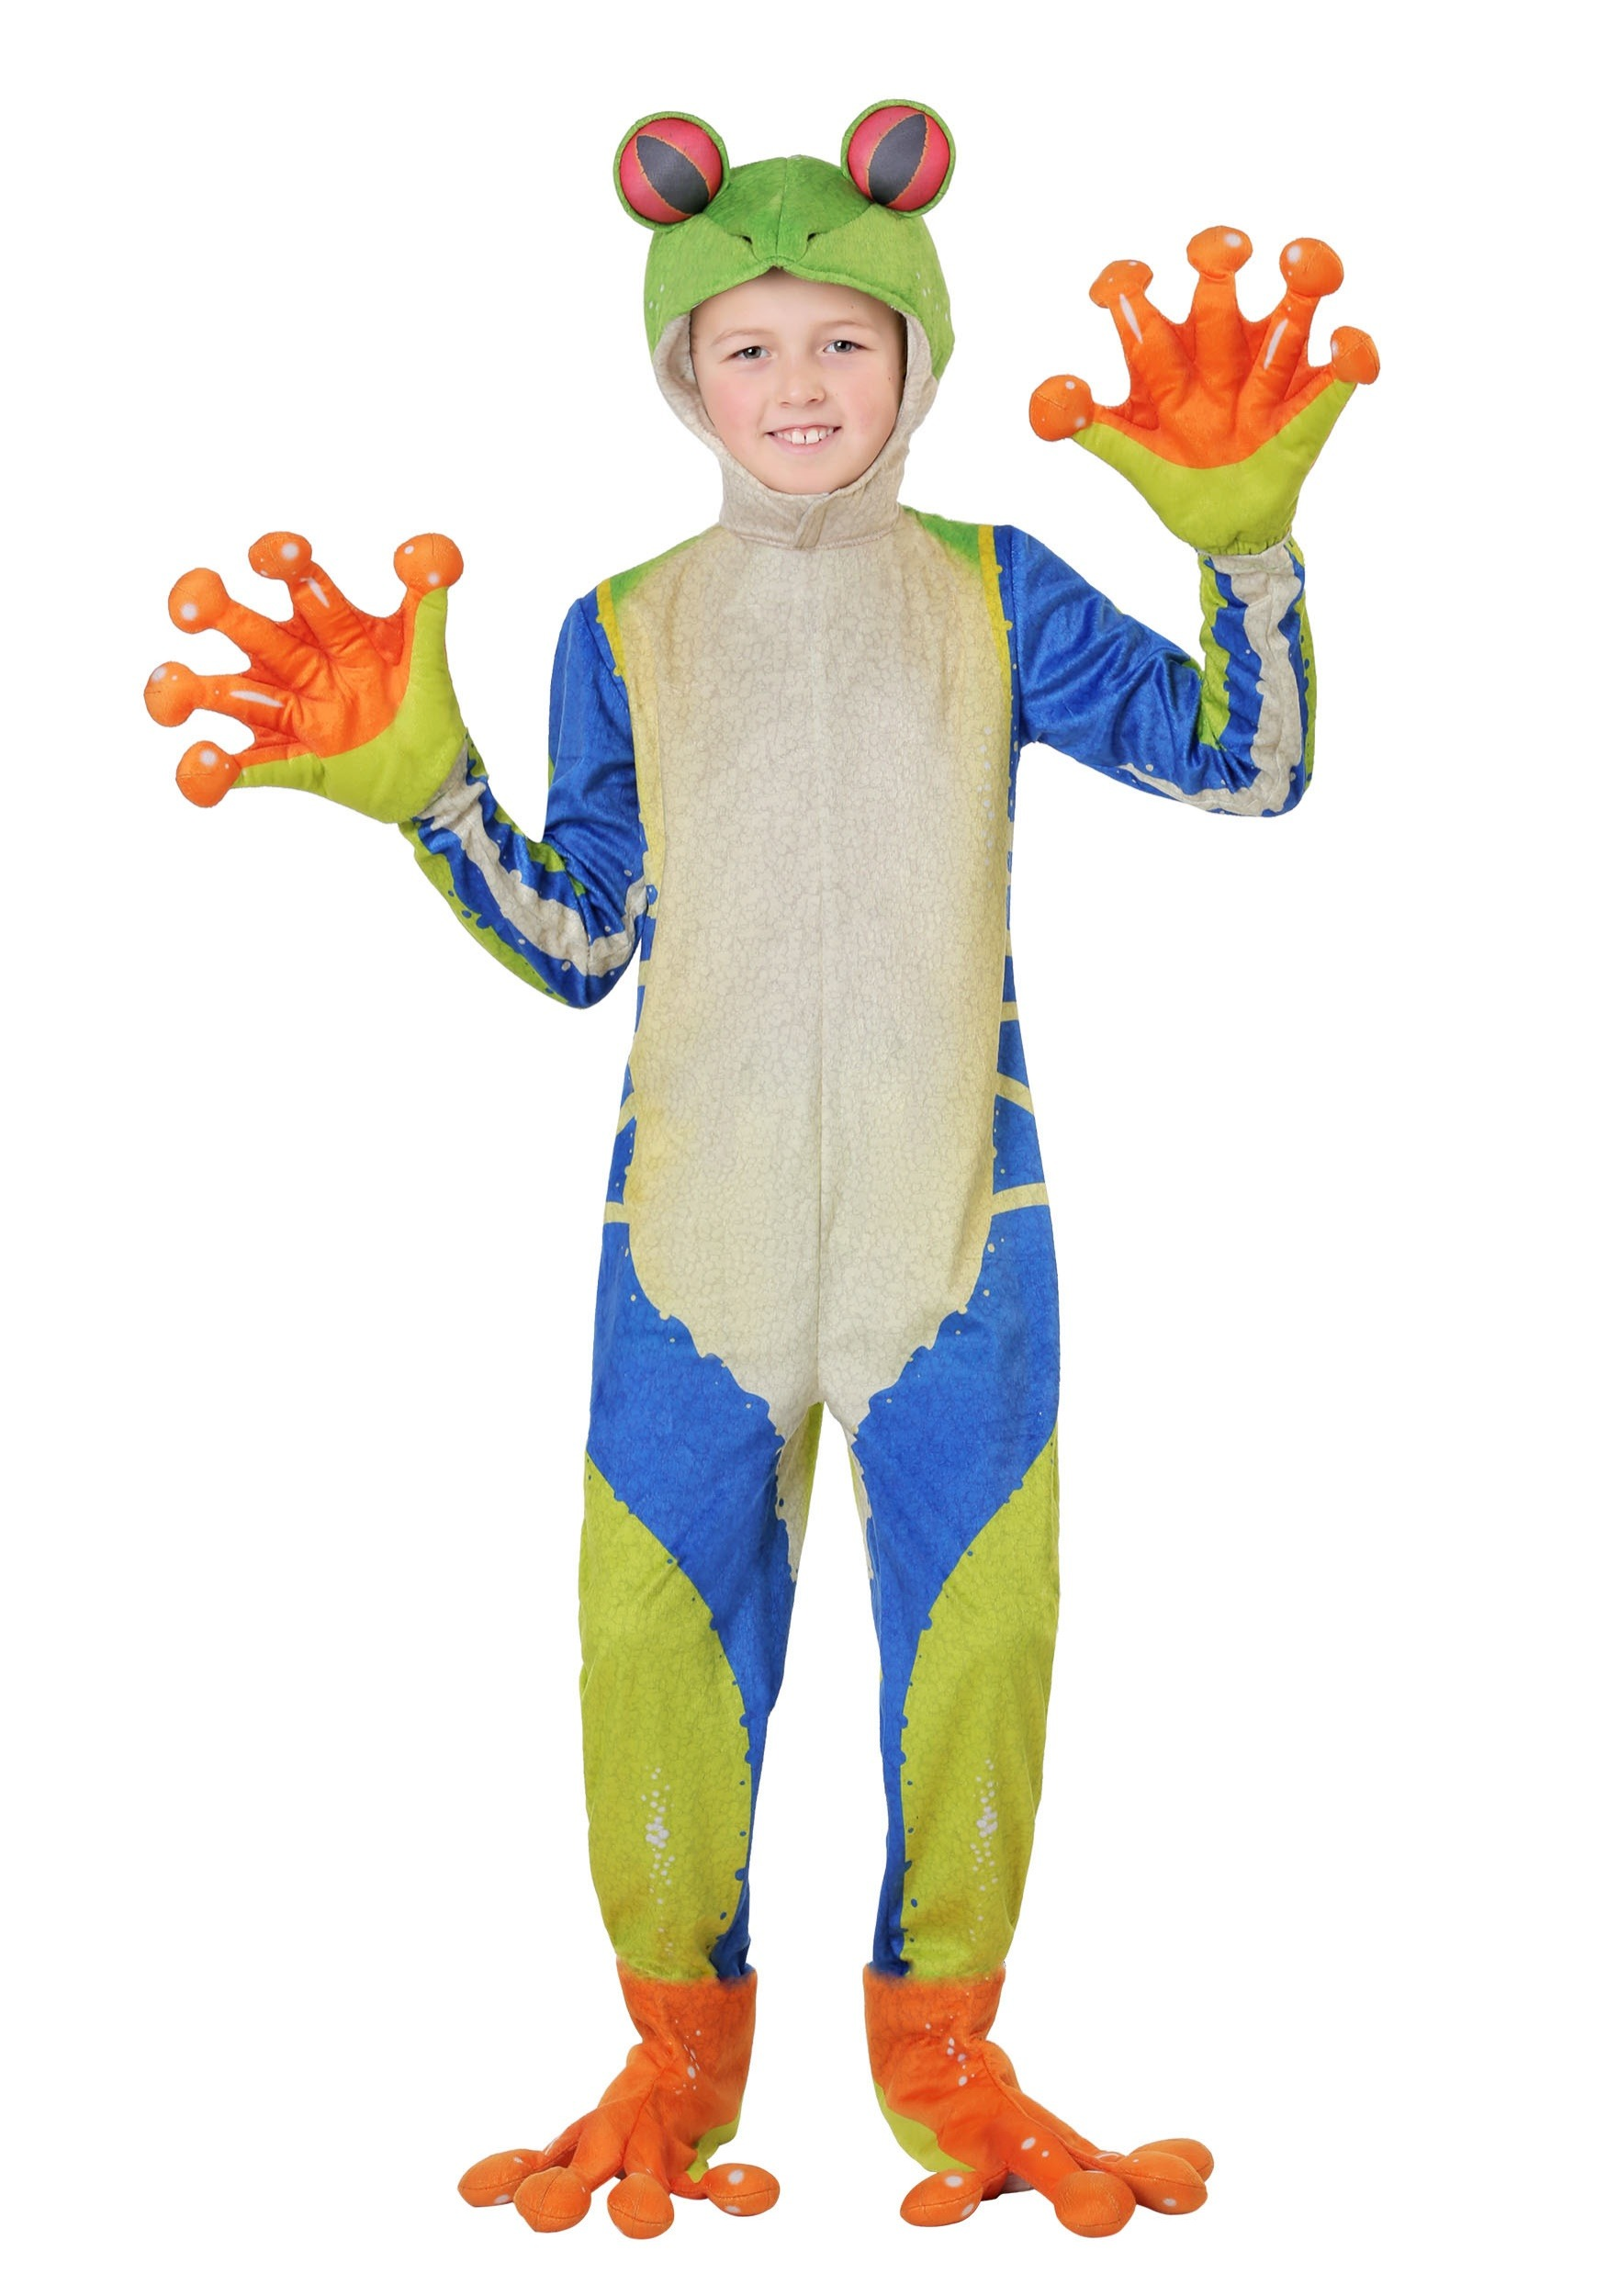 Realistic Tree Frog Costume for a Child